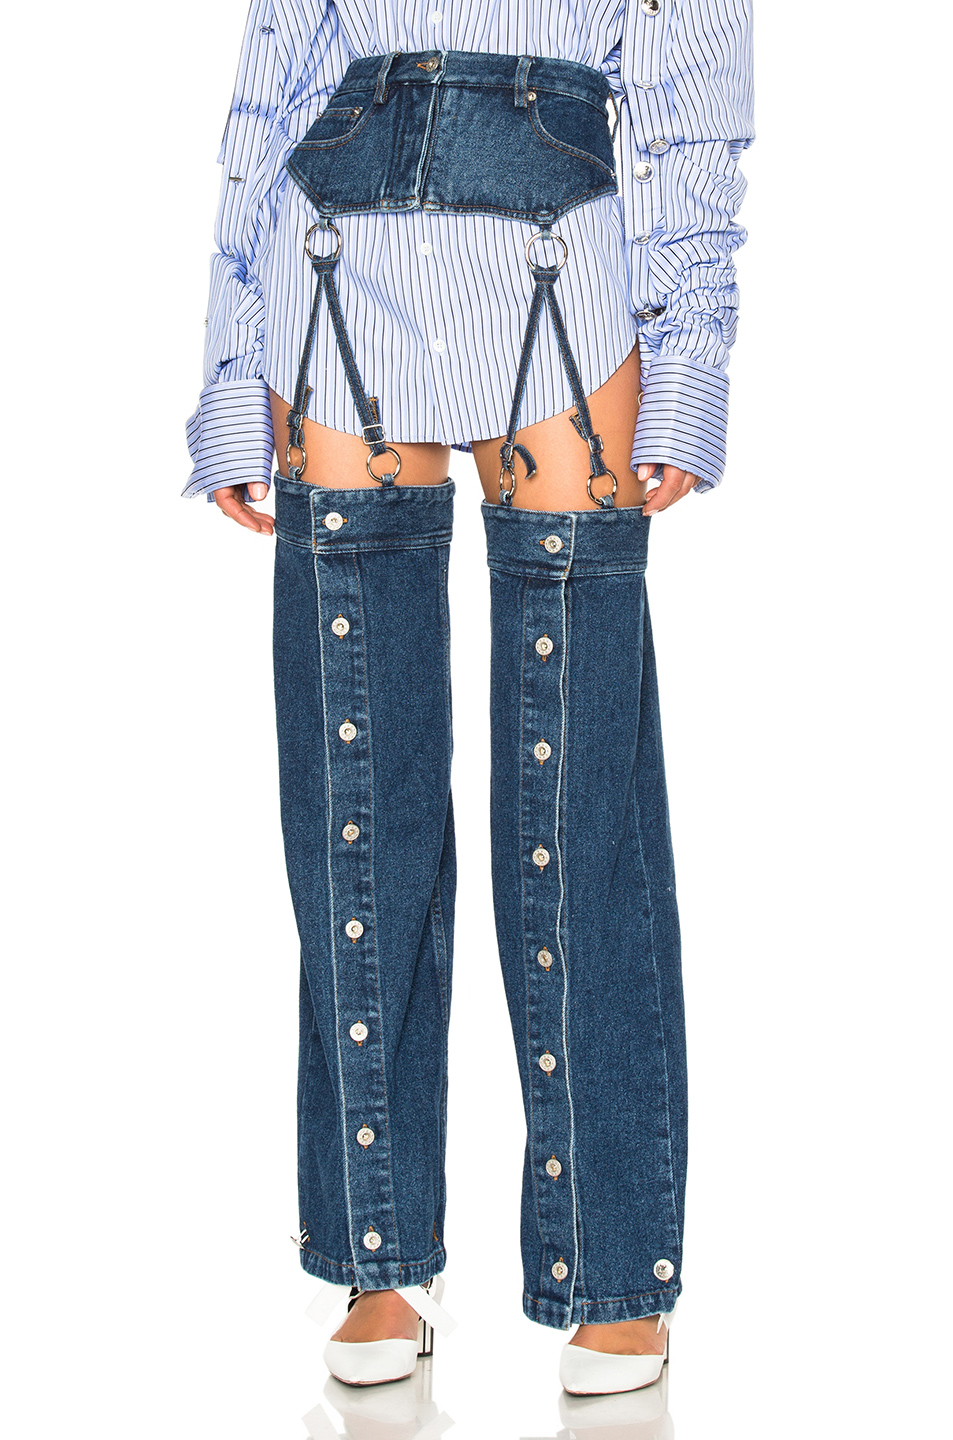 Detachable Jeans Prove The Fashion Industry Is Just Ridiculous - Funny Gallery | eBaumu0026#39;s World